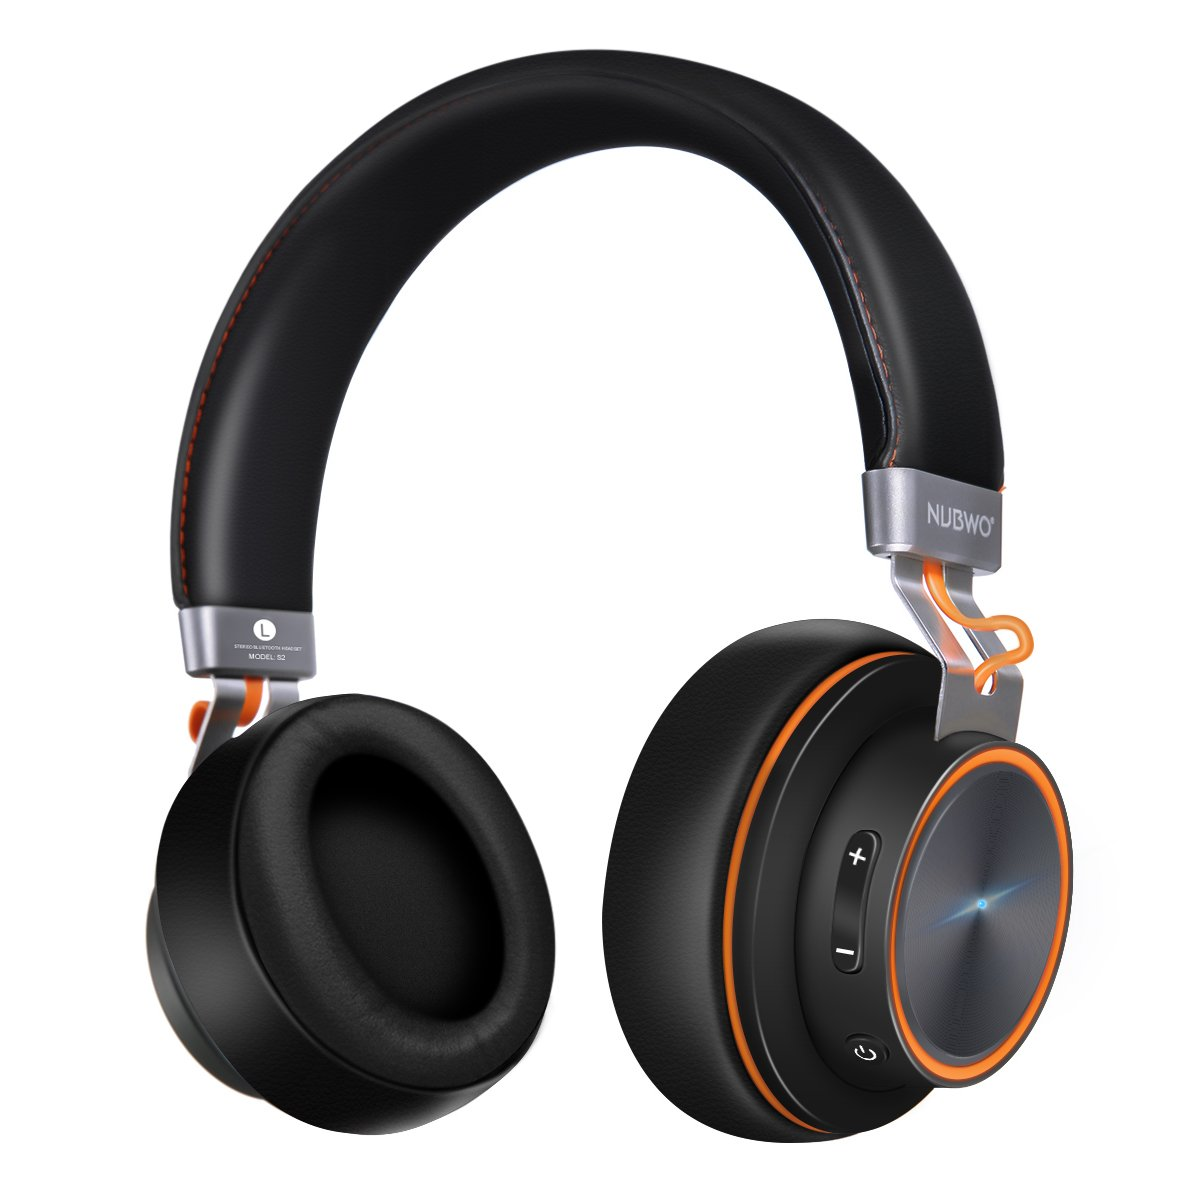 Bluetooth Headphones, ELEGIANT S2 Over Ear Bluetooth Headset Hi-Fi Stereo Headphones with Adjustable Headband, Soft-Protein Earpads, 16-Hour Playtime and Wired Mode for iPhone Android Phones PC